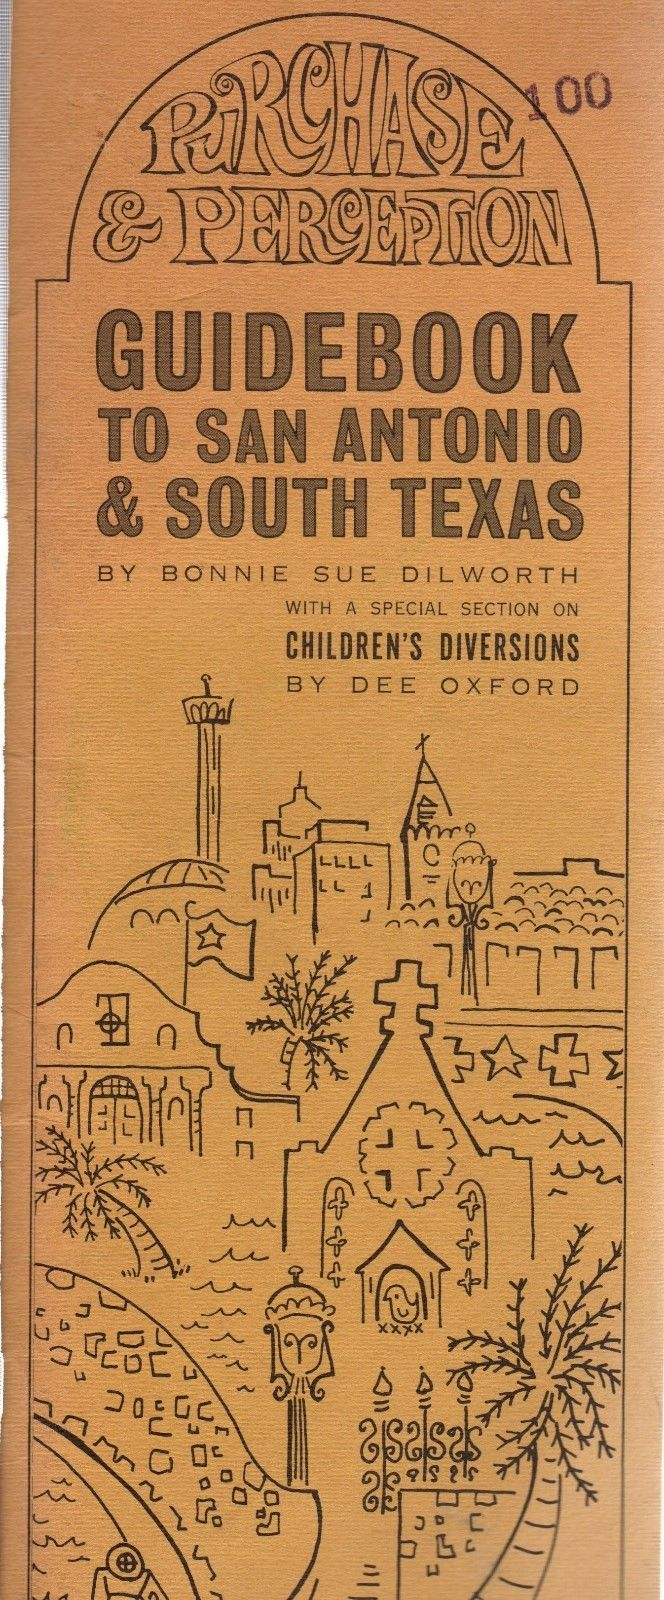 Primary image for Guidebook to San Antonio & South Texas by Bonnie S. Dilworth File (1142)